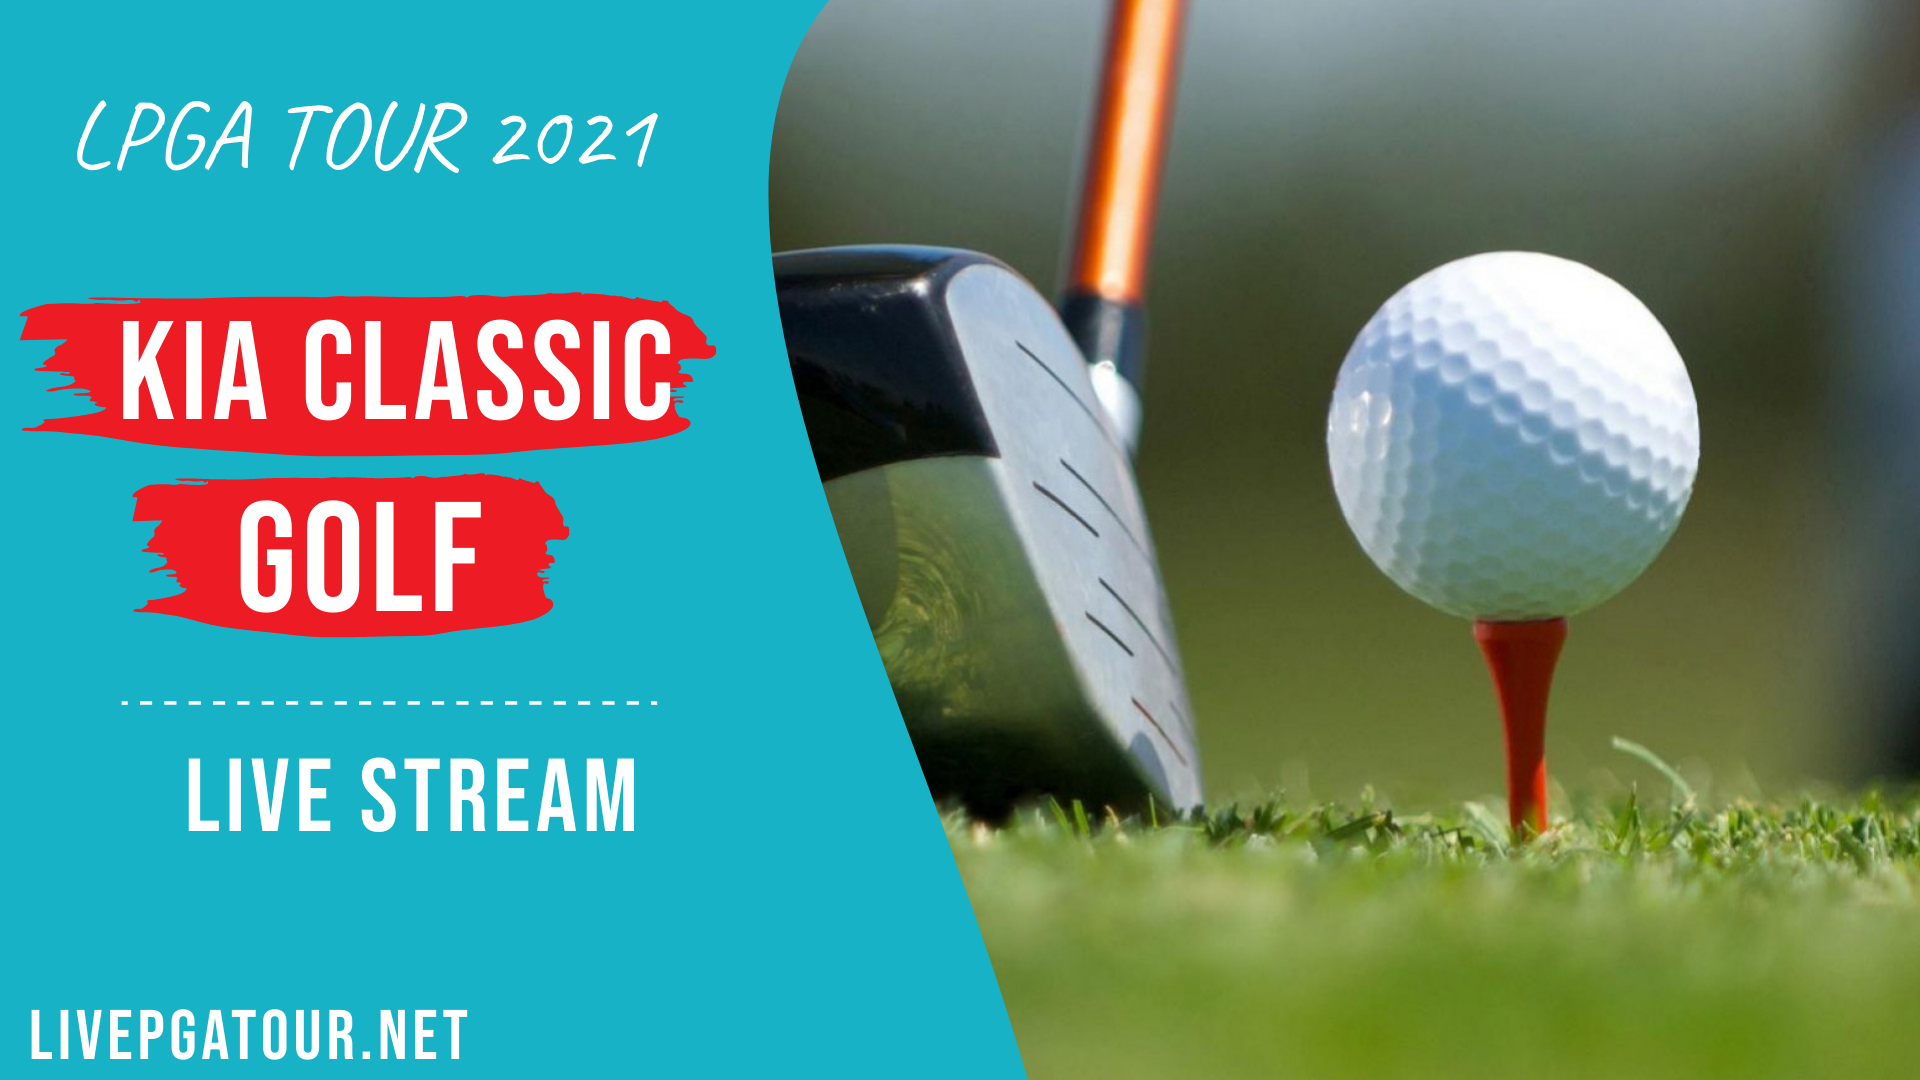 Kia Classic Golf Live Stream 2021: LPGA Tour Day 4